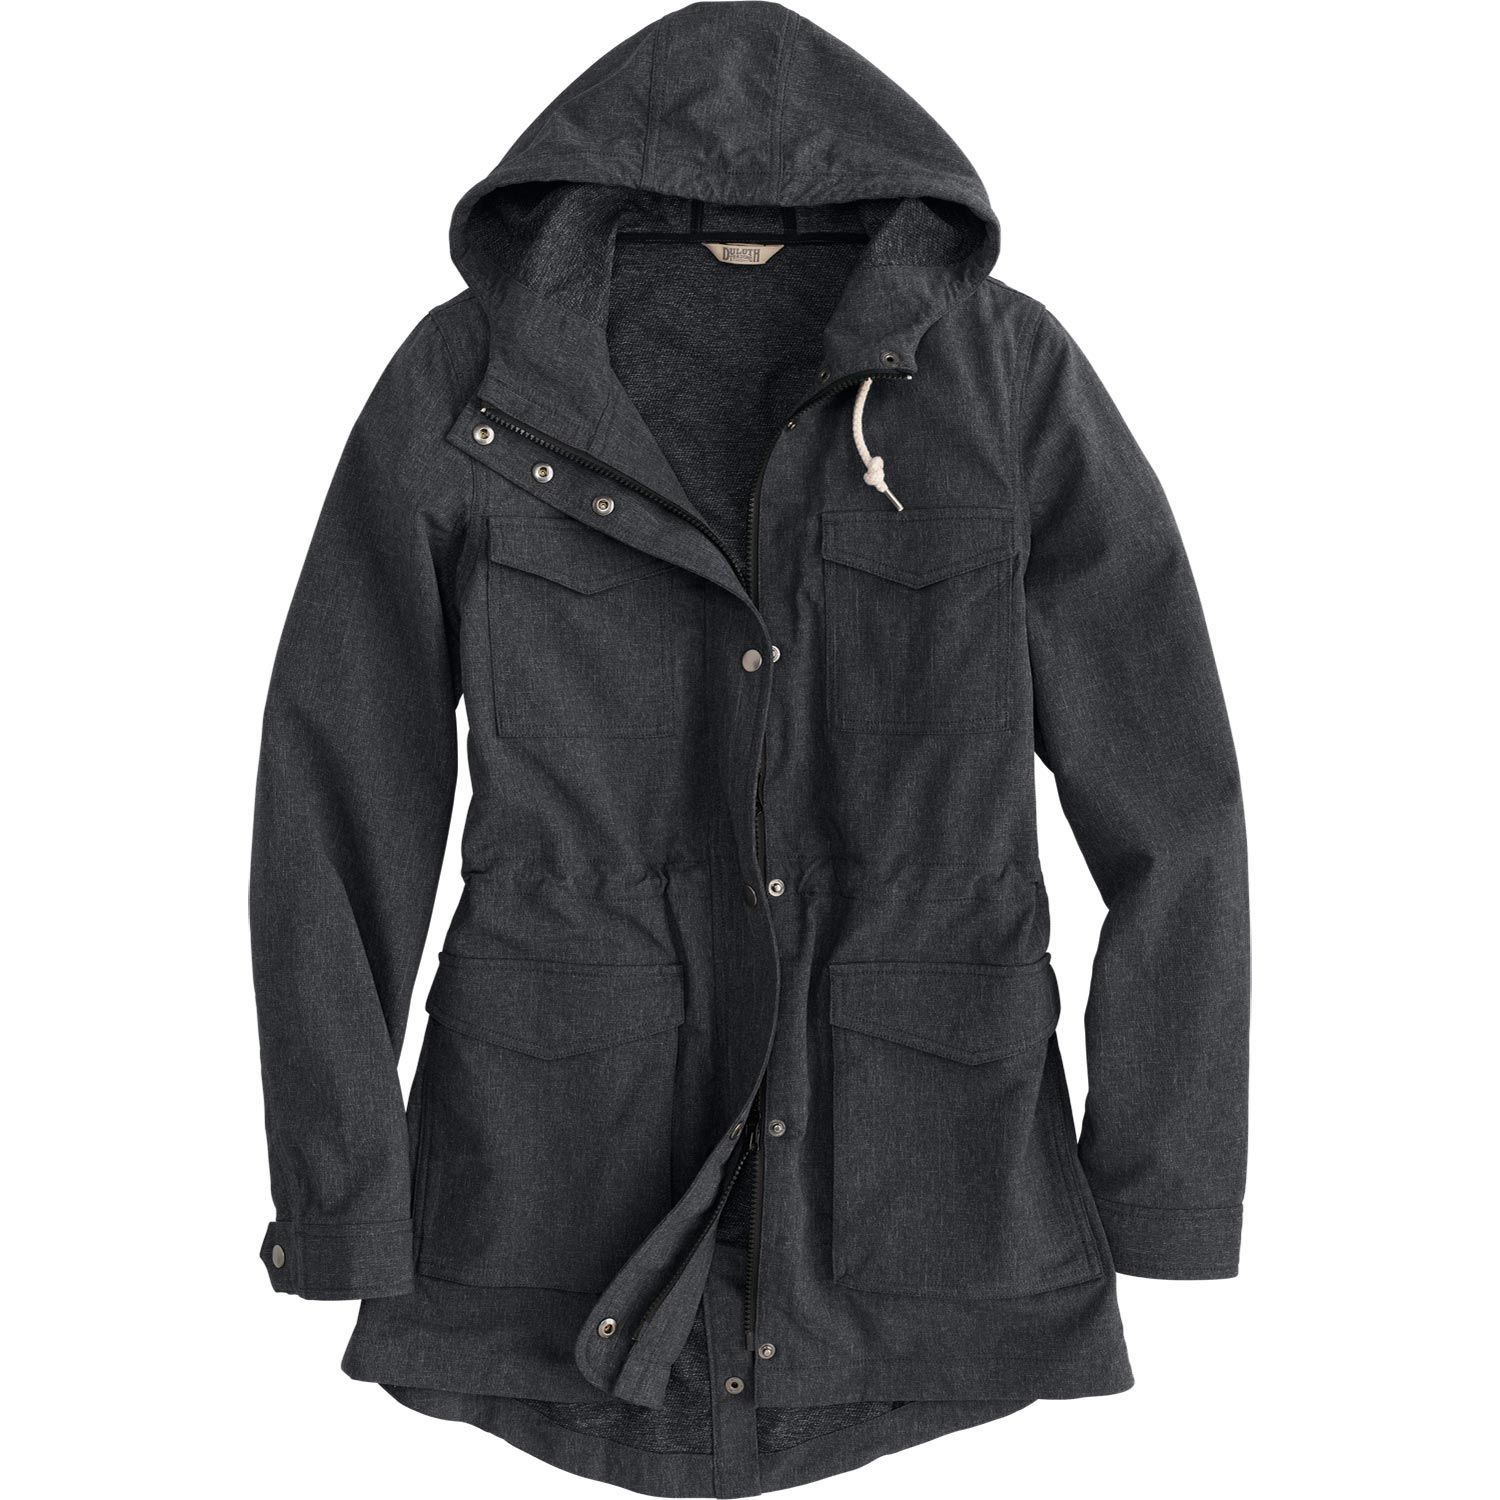 The Women S Mist Master Spring Jacket Sheds Drizzle Flexes Freely Covers Your Head With Acinchable Hood And Womens Spring Jackets Jackets Rain Jacket Women [ 1500 x 1500 Pixel ]